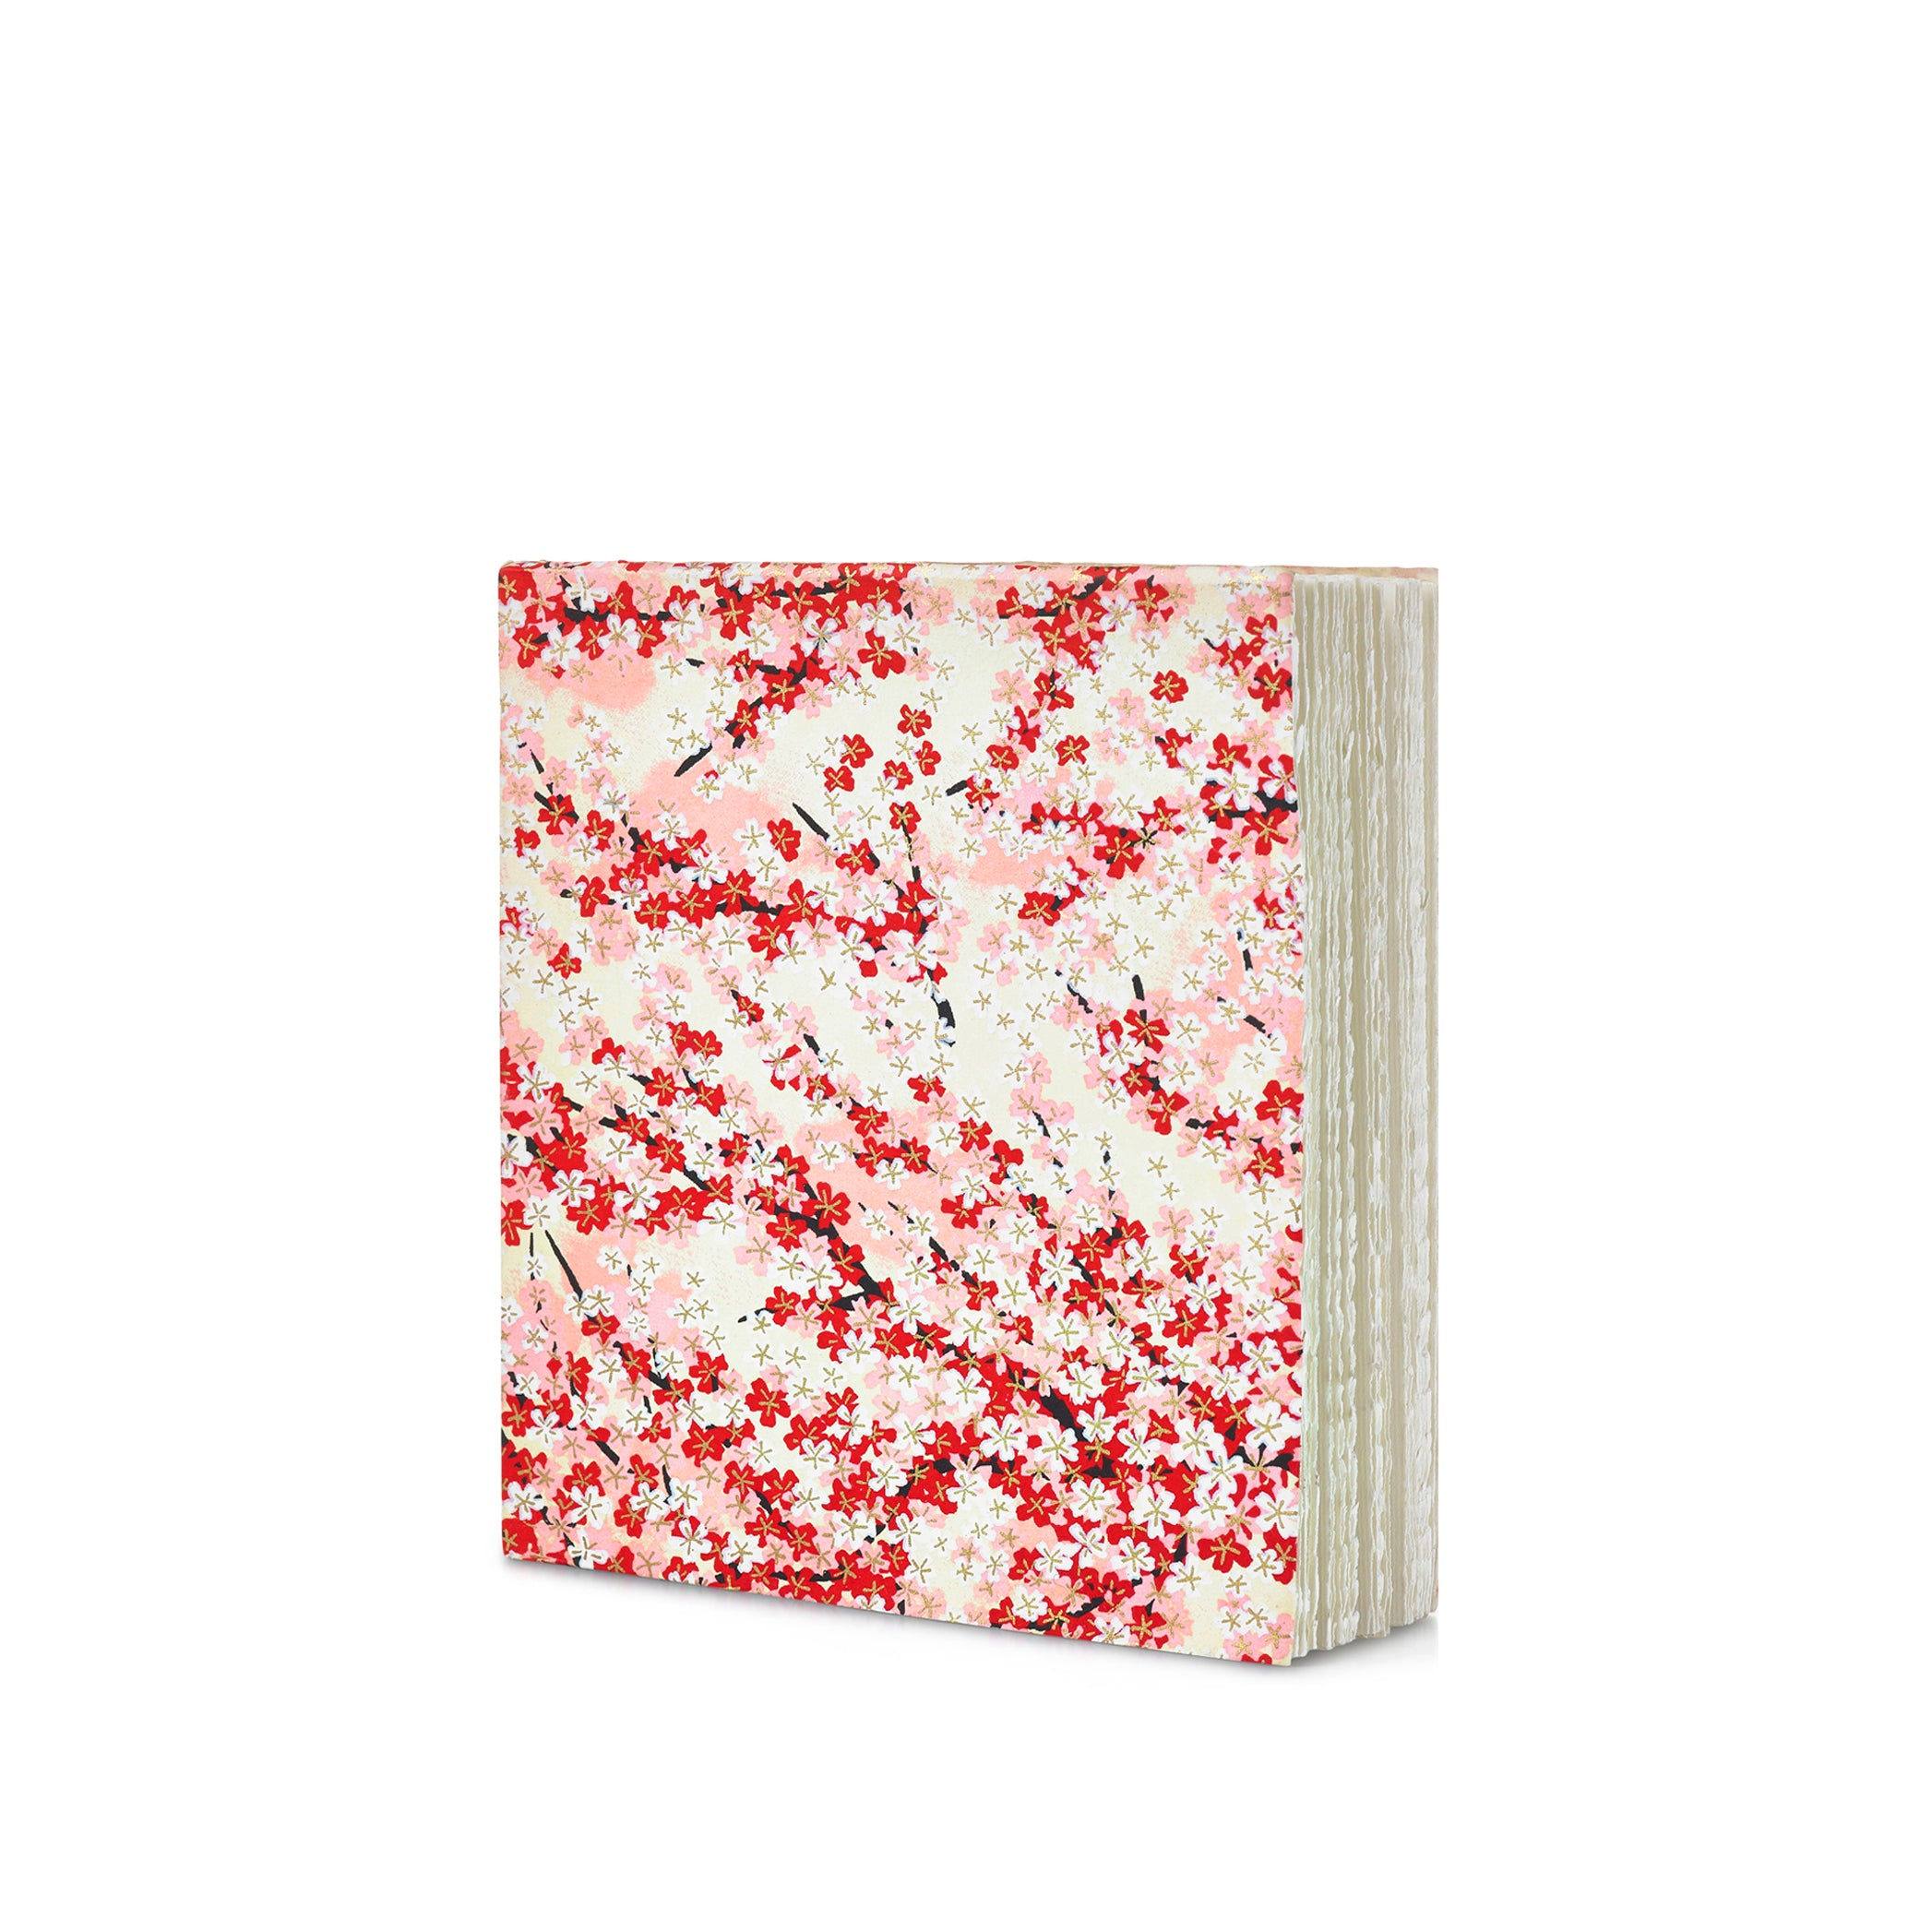 Handprinted Japanese Chiyogami Covered Sketchbook, Cherry Blossom